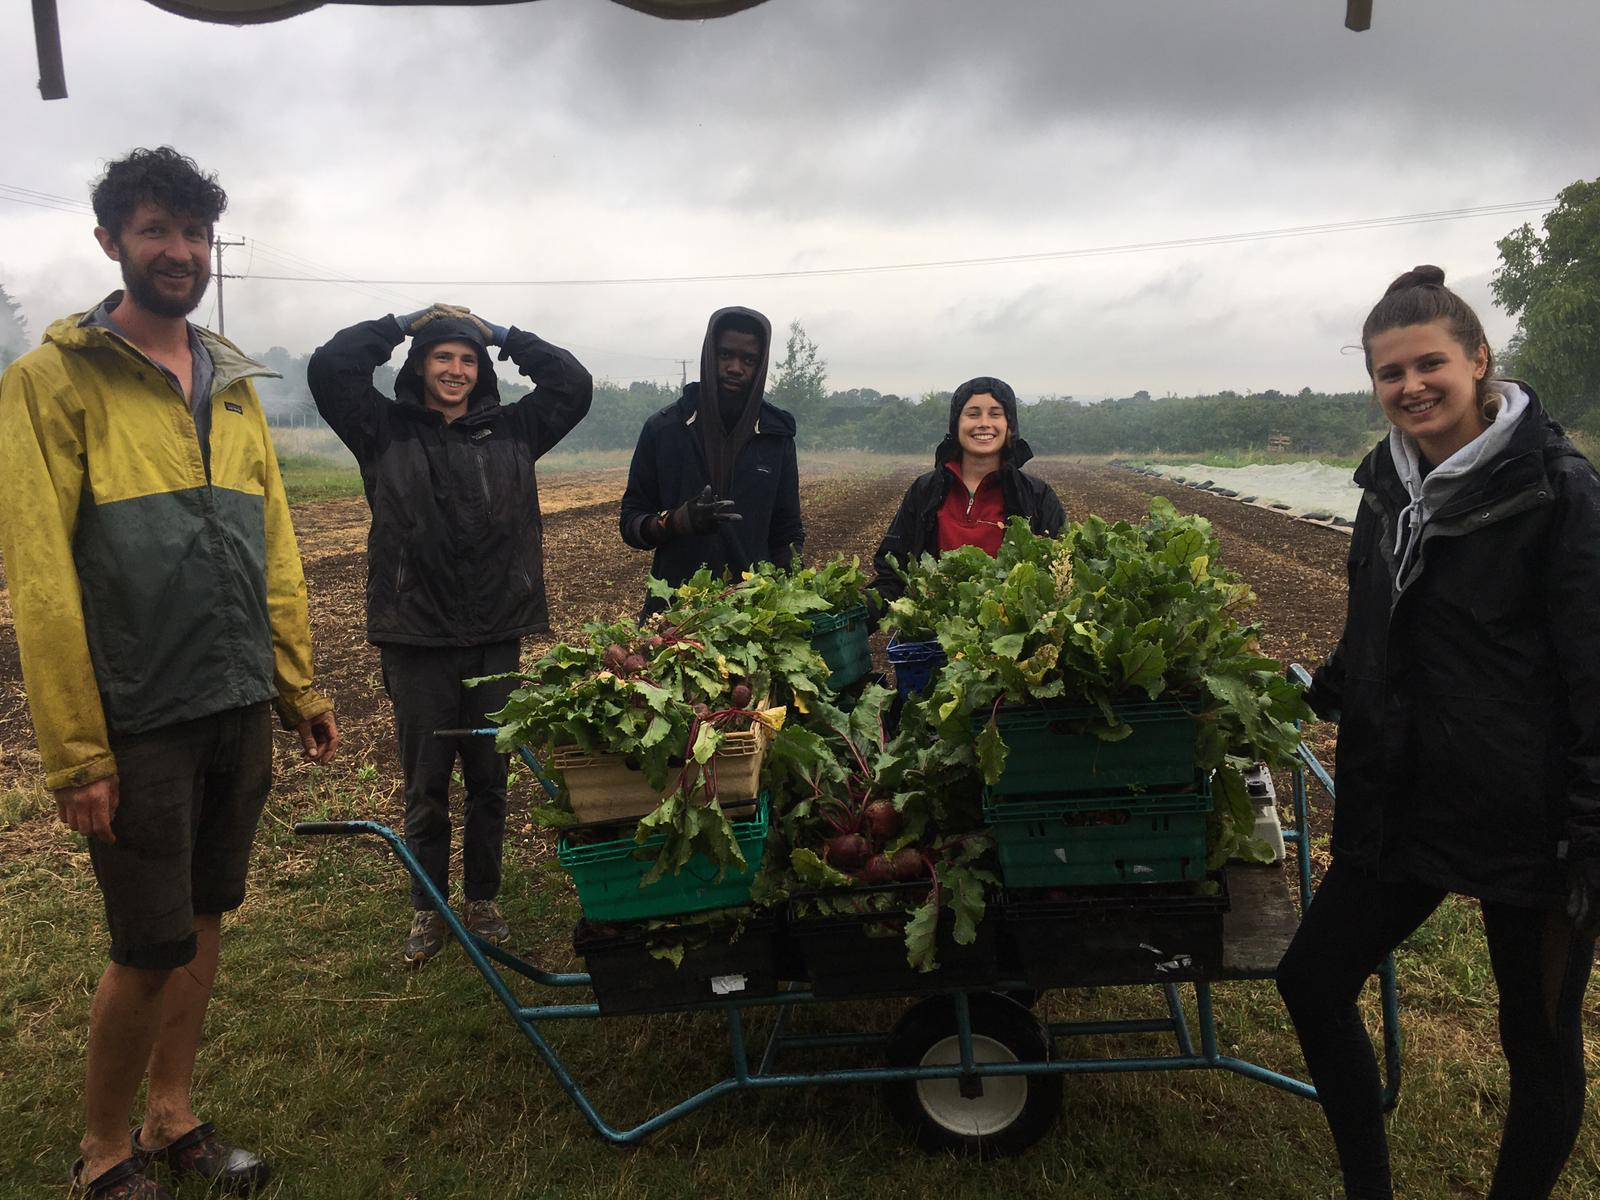 Reflections from working on Sutton Community Farm